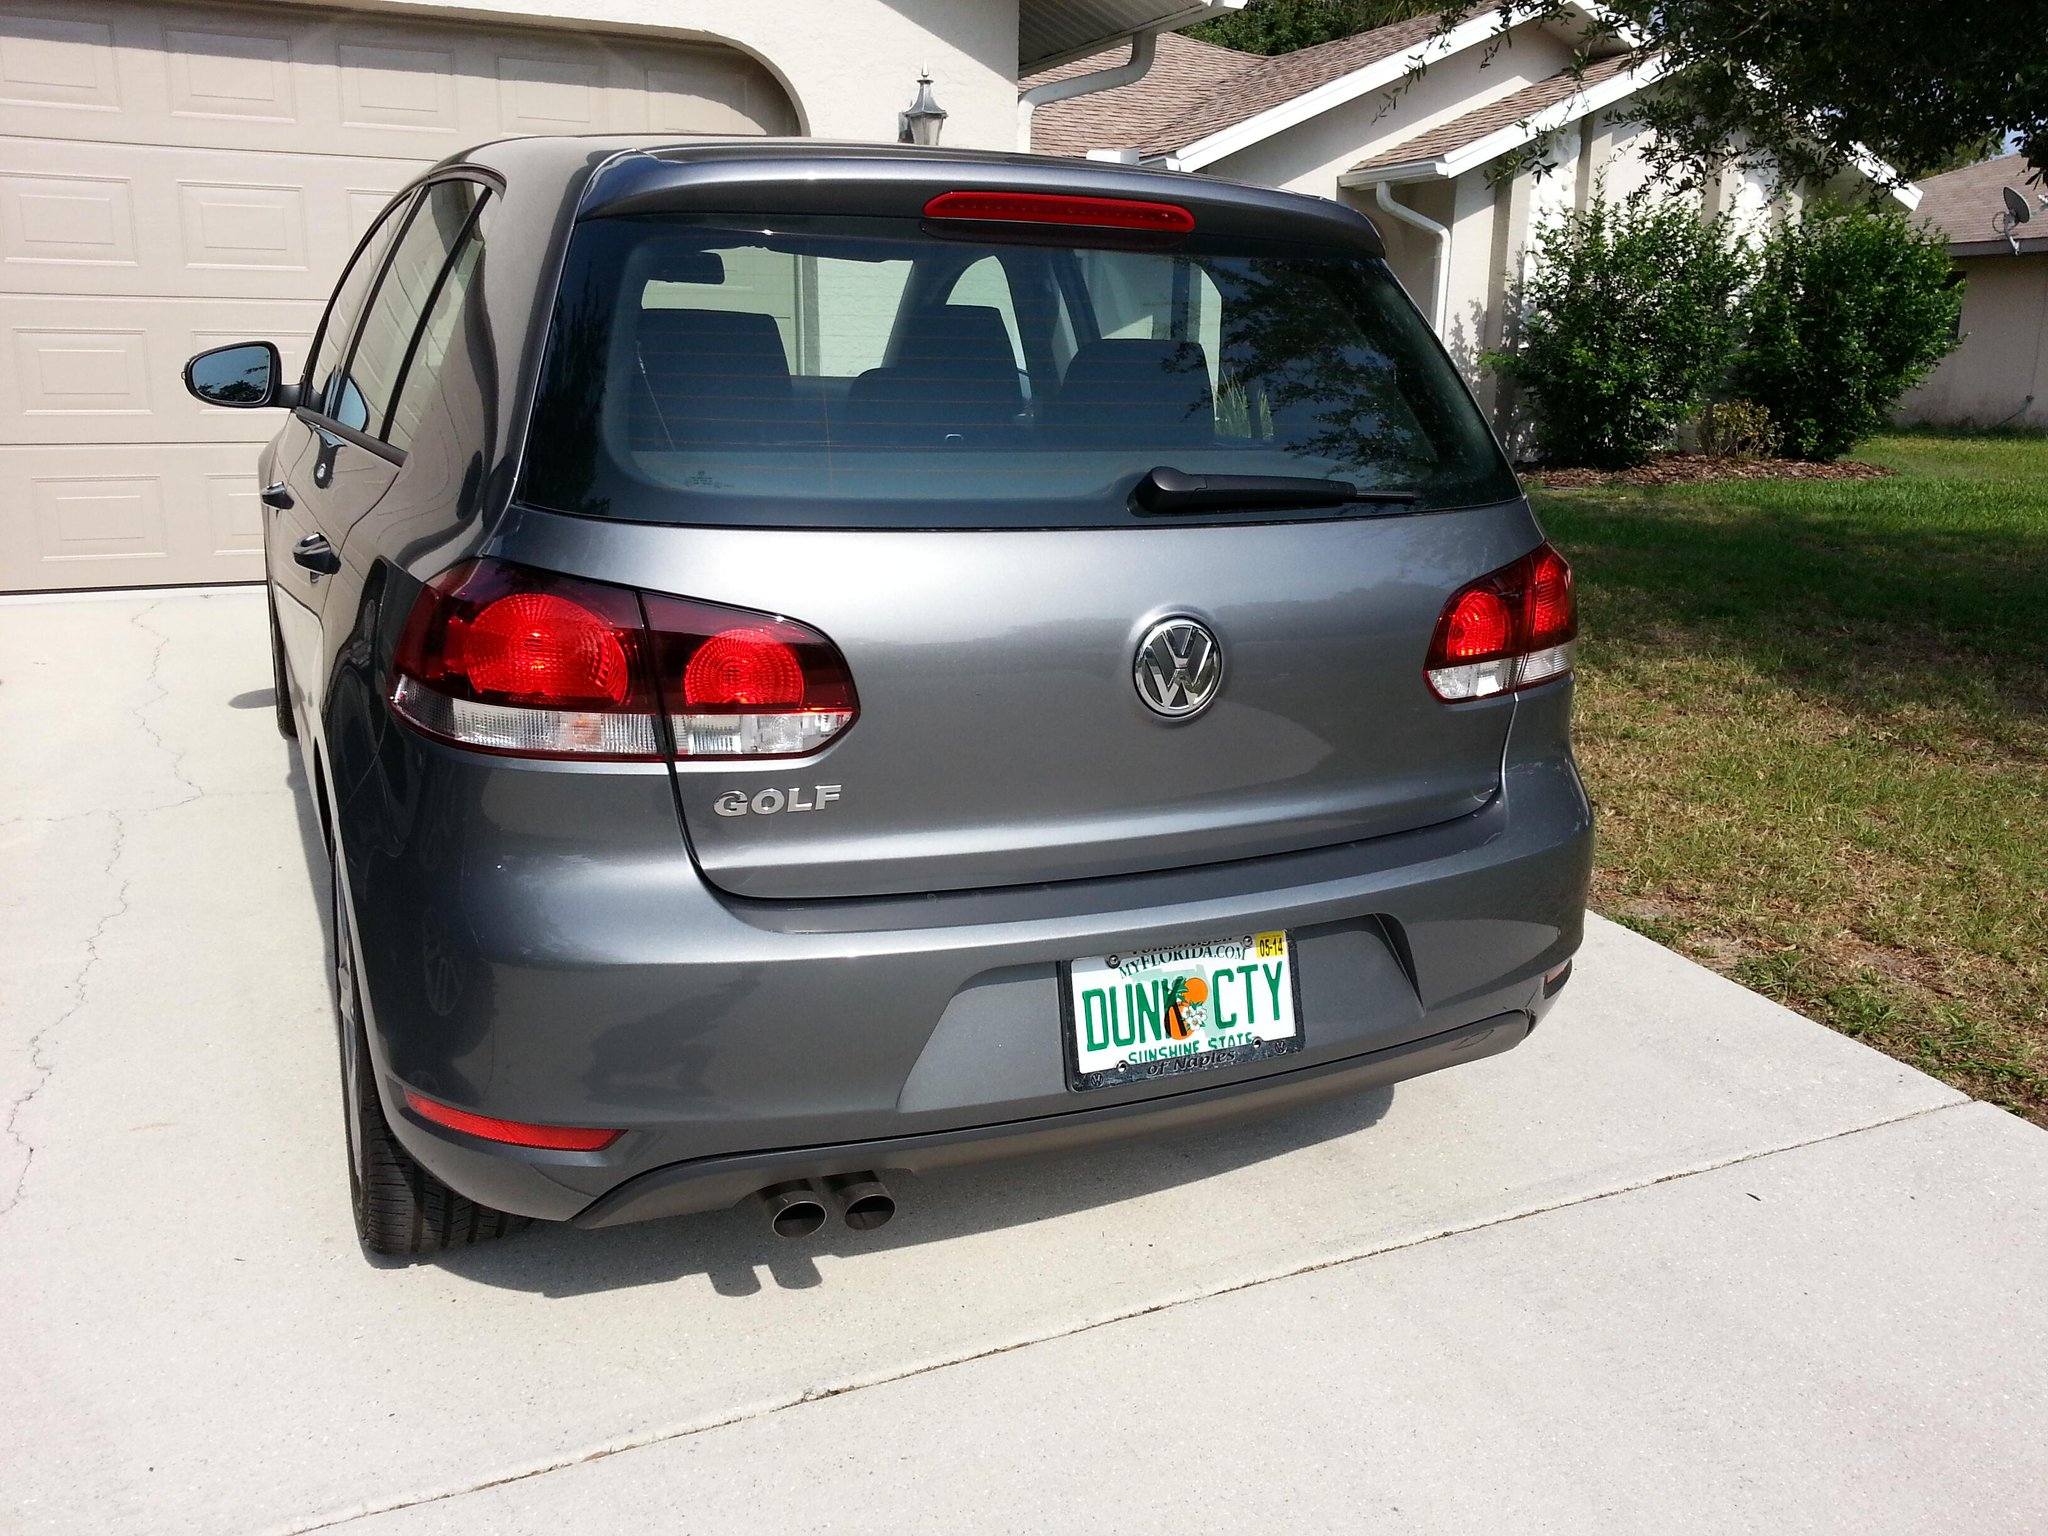 There's a new license plate in Fort Myers http://t.co/wQZXiCtixa (via @Gortmctabs)